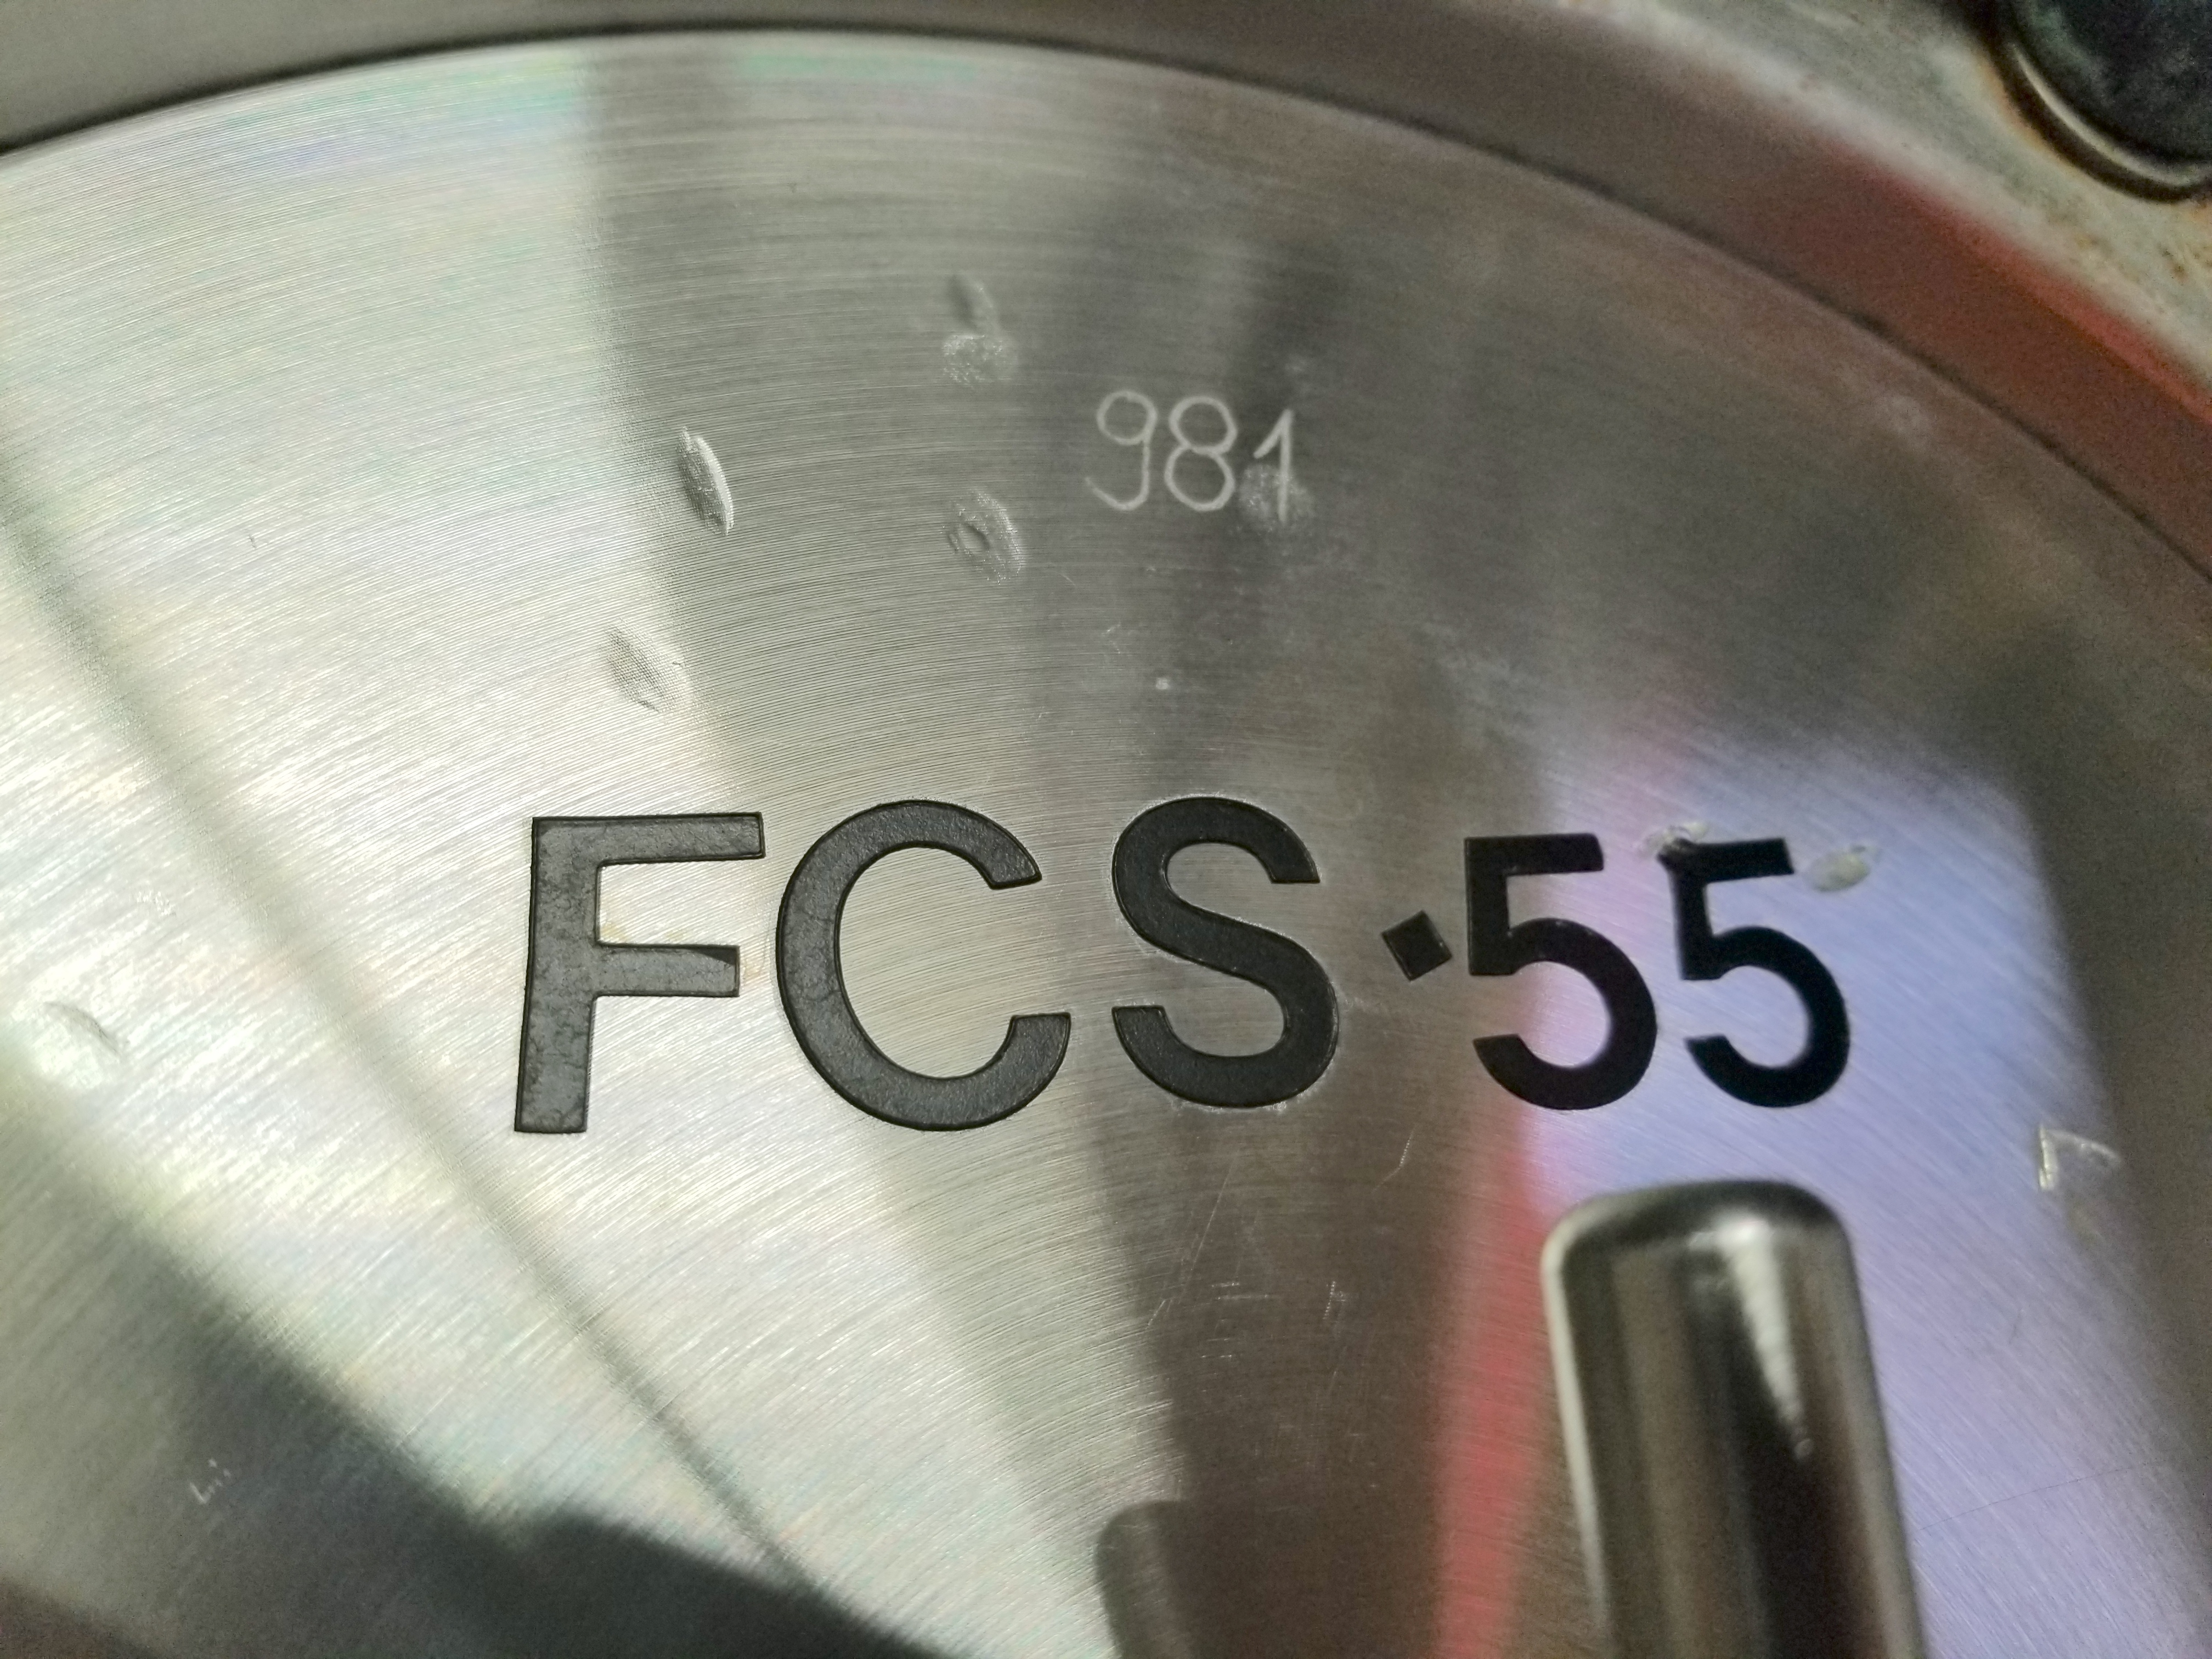 HCFS-55 Corn Syrup Flow Meter 3 Inch Connections - Image 2 of 3